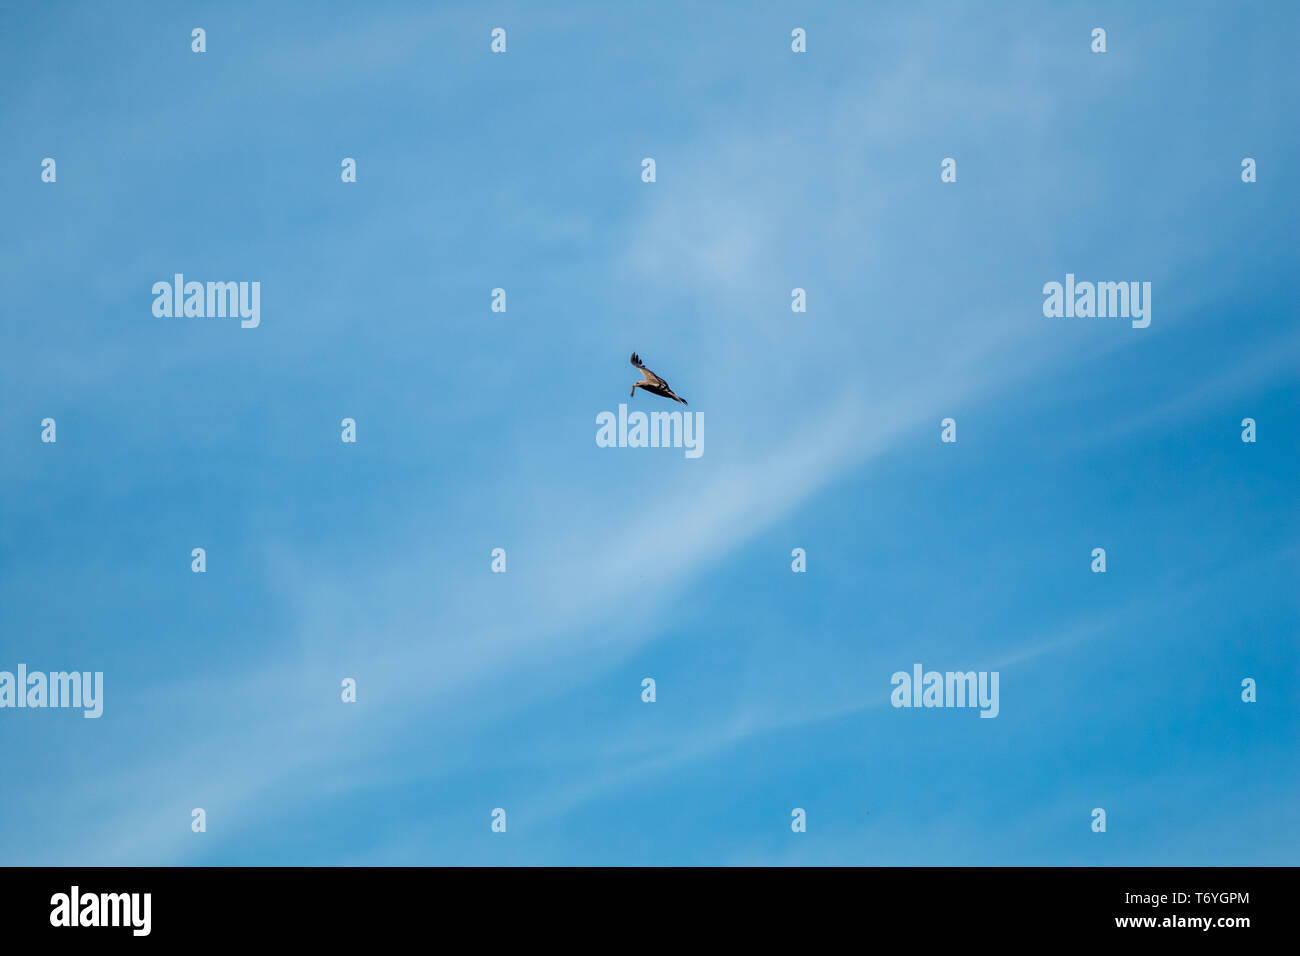 Hawk in the sky hunted the mouse. - Stock Image